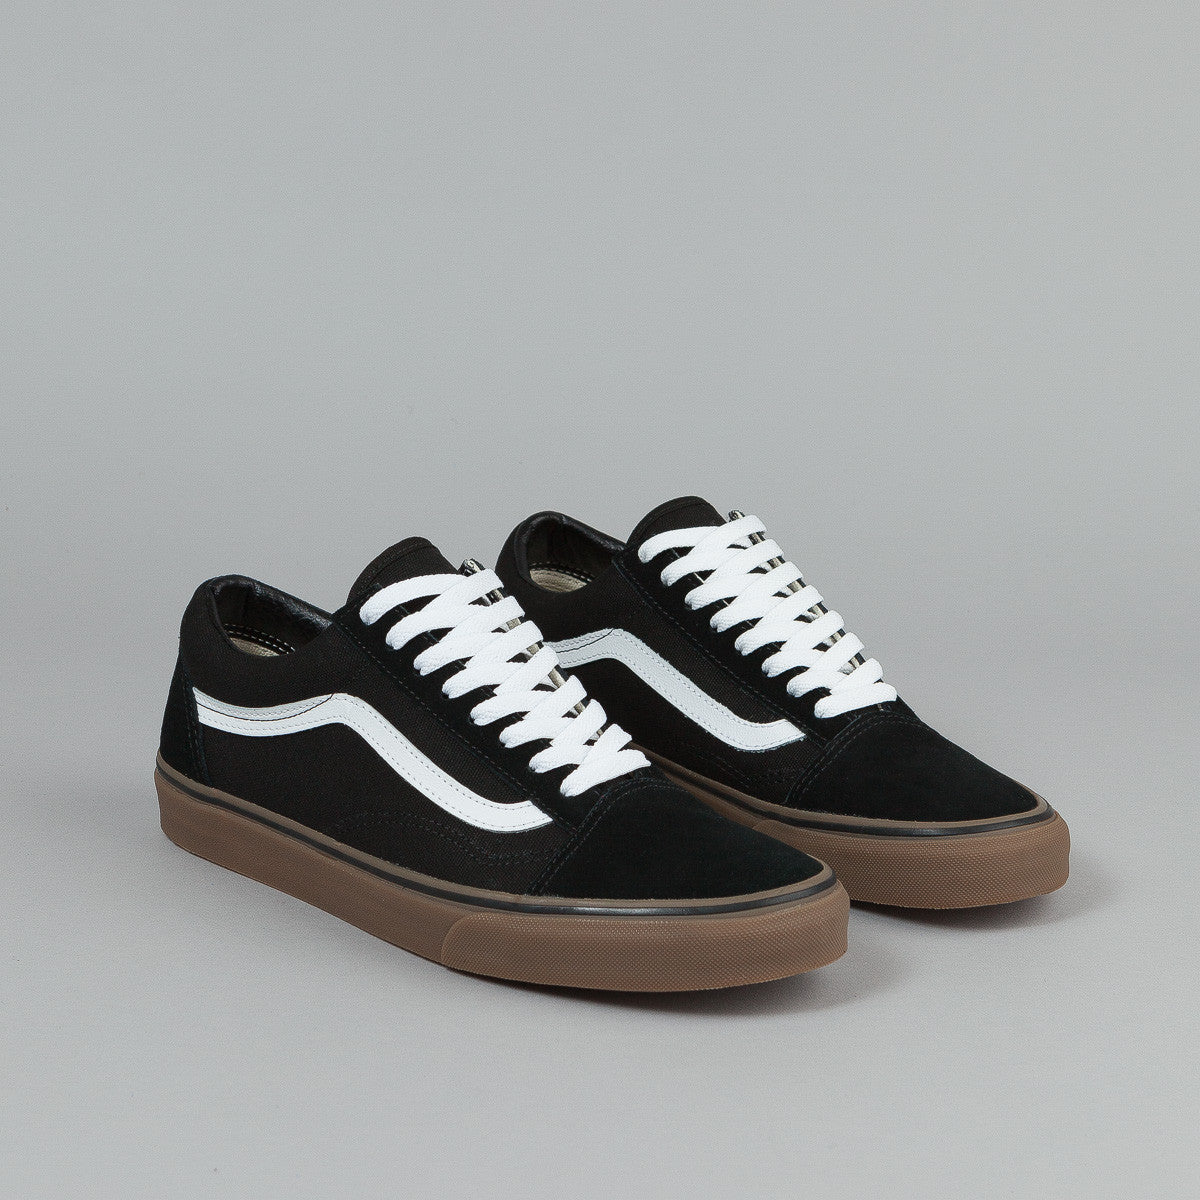 old skool vans black gum